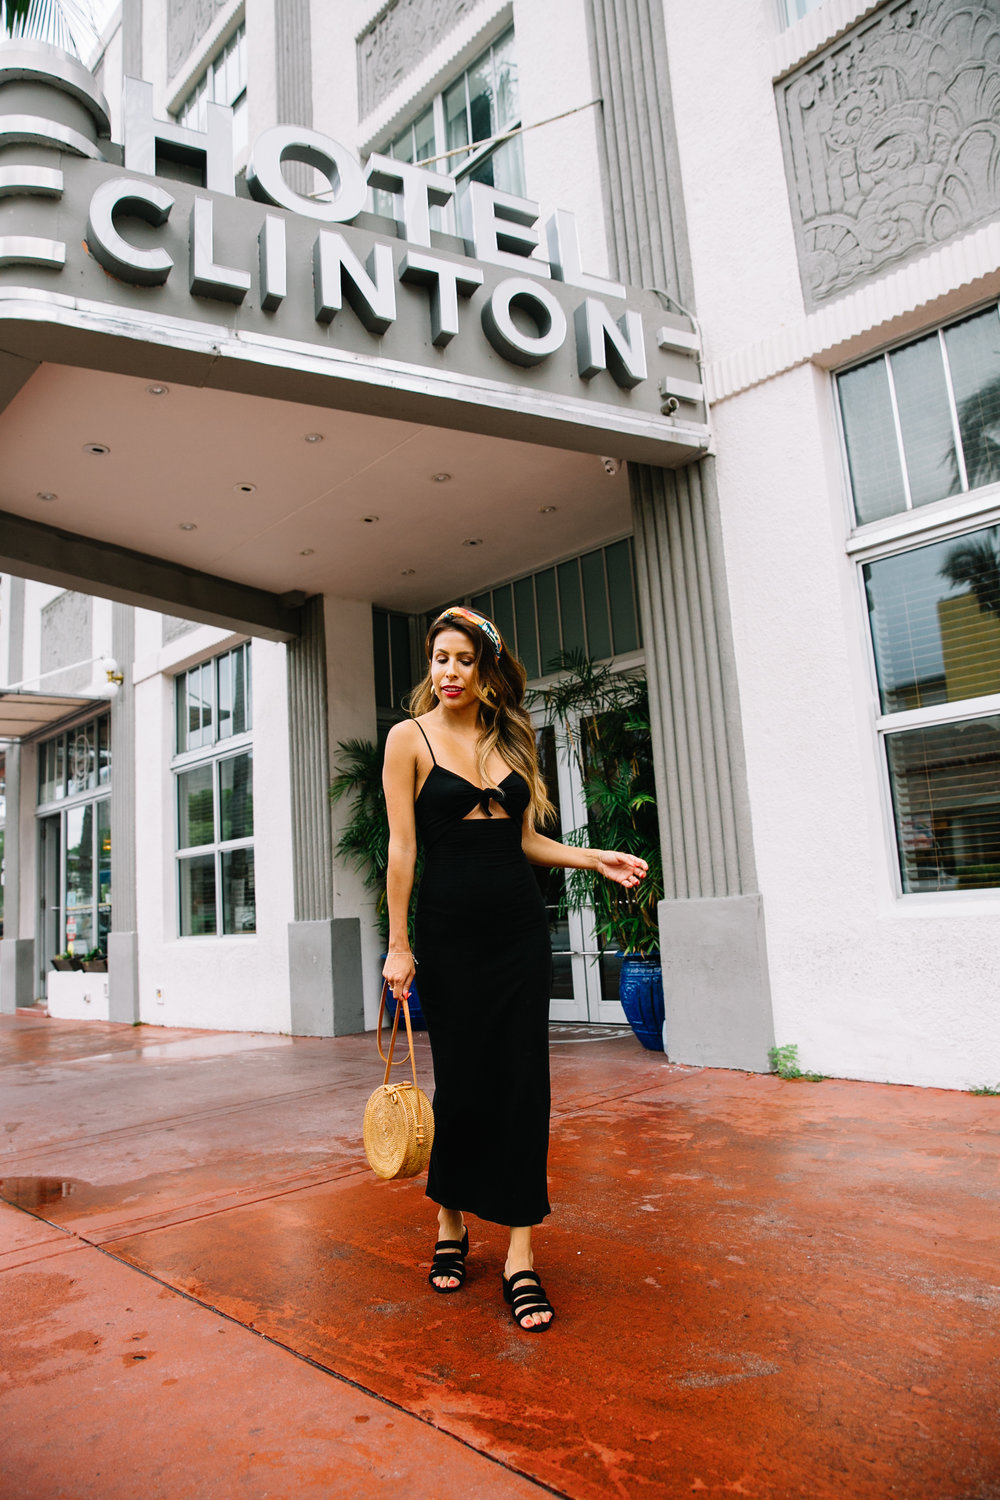 The Clinton Hotel in South Beach, Miami